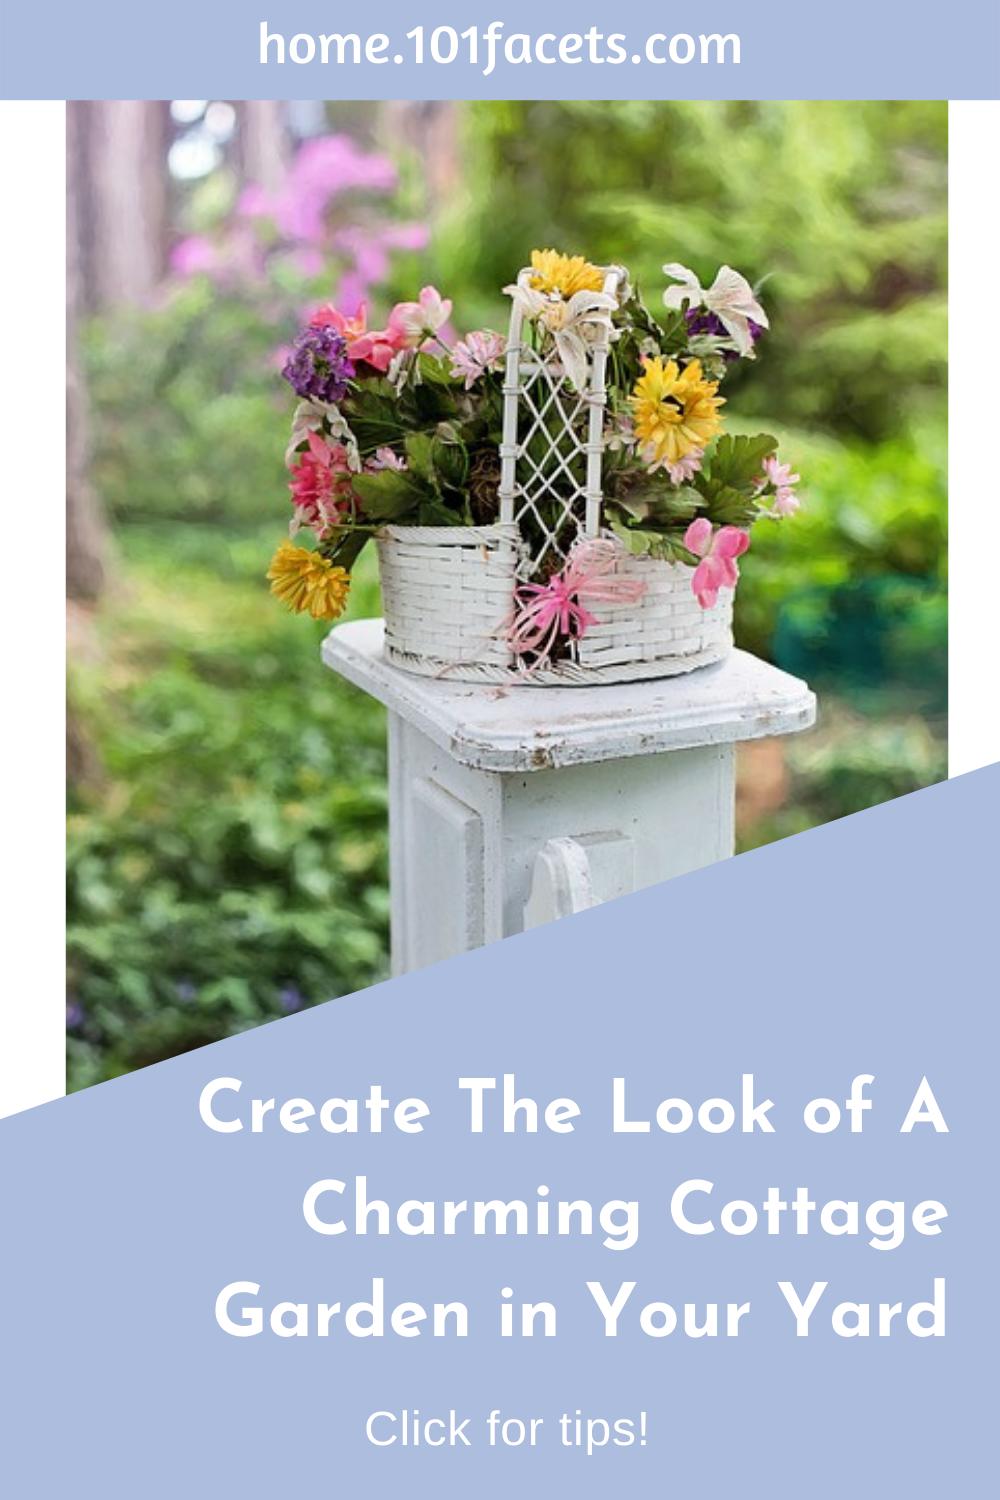 Create The Look of A Charming Cottage Garden in Your Yard